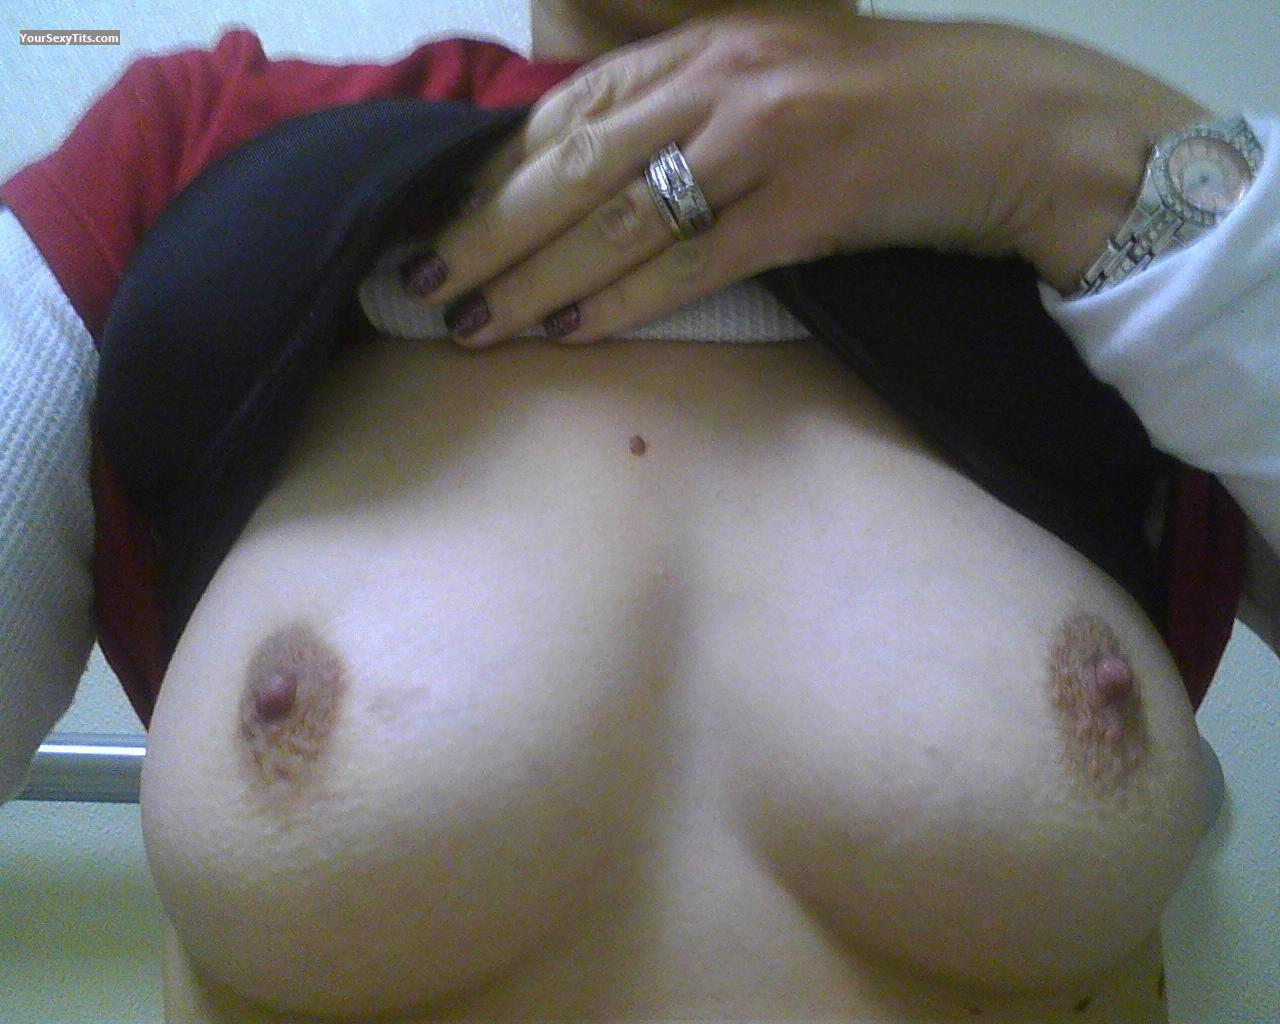 My Medium Tits Selfie by Knkycple.30